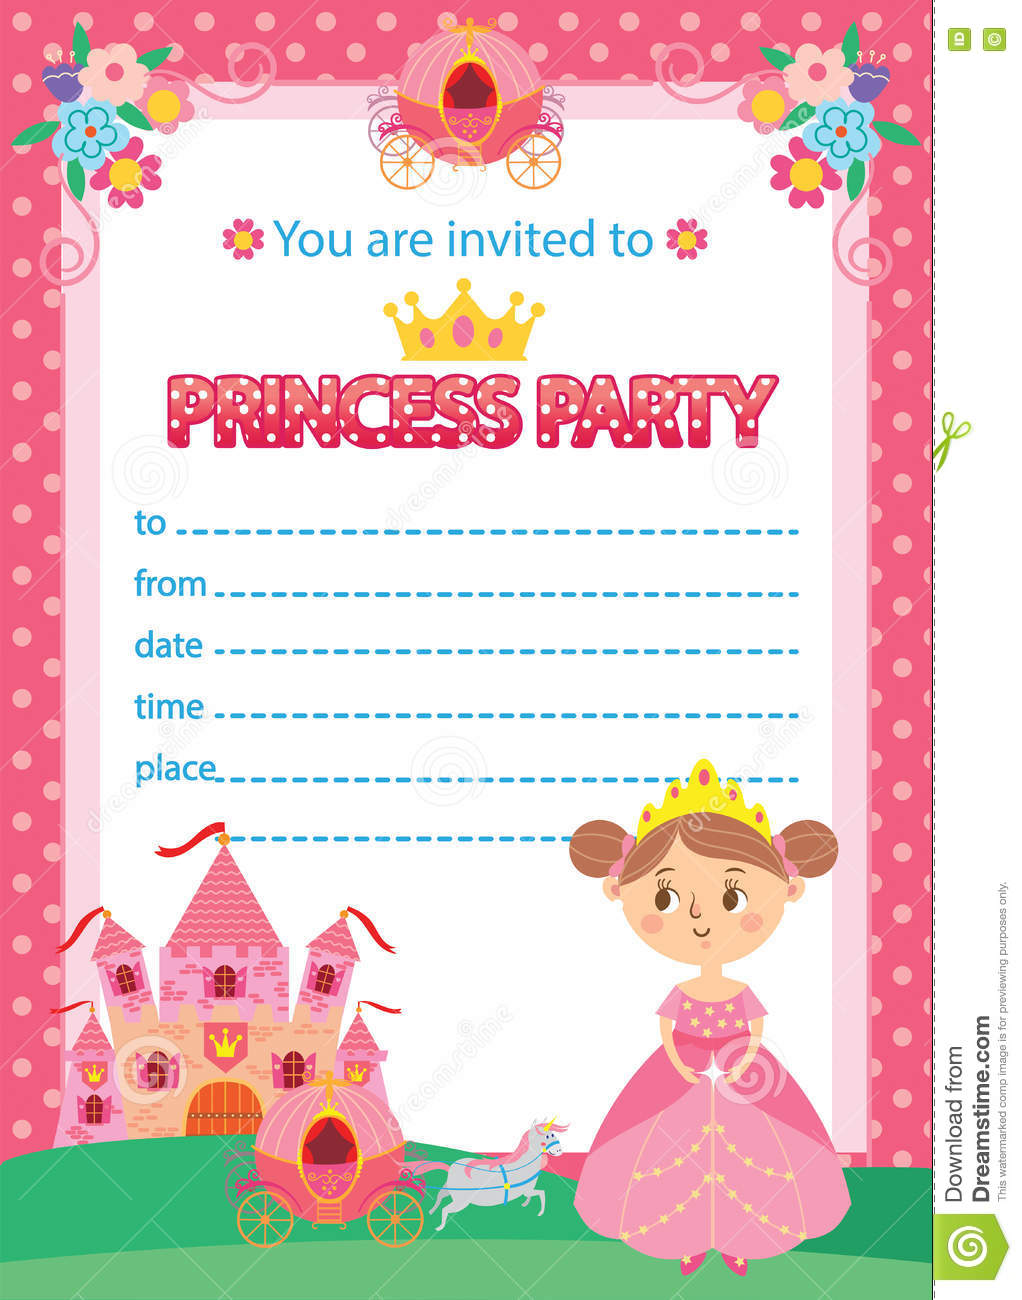 Princess Birthday Party Invitations Template | Princess Birthday Party Stock Vector Illustration Of Children